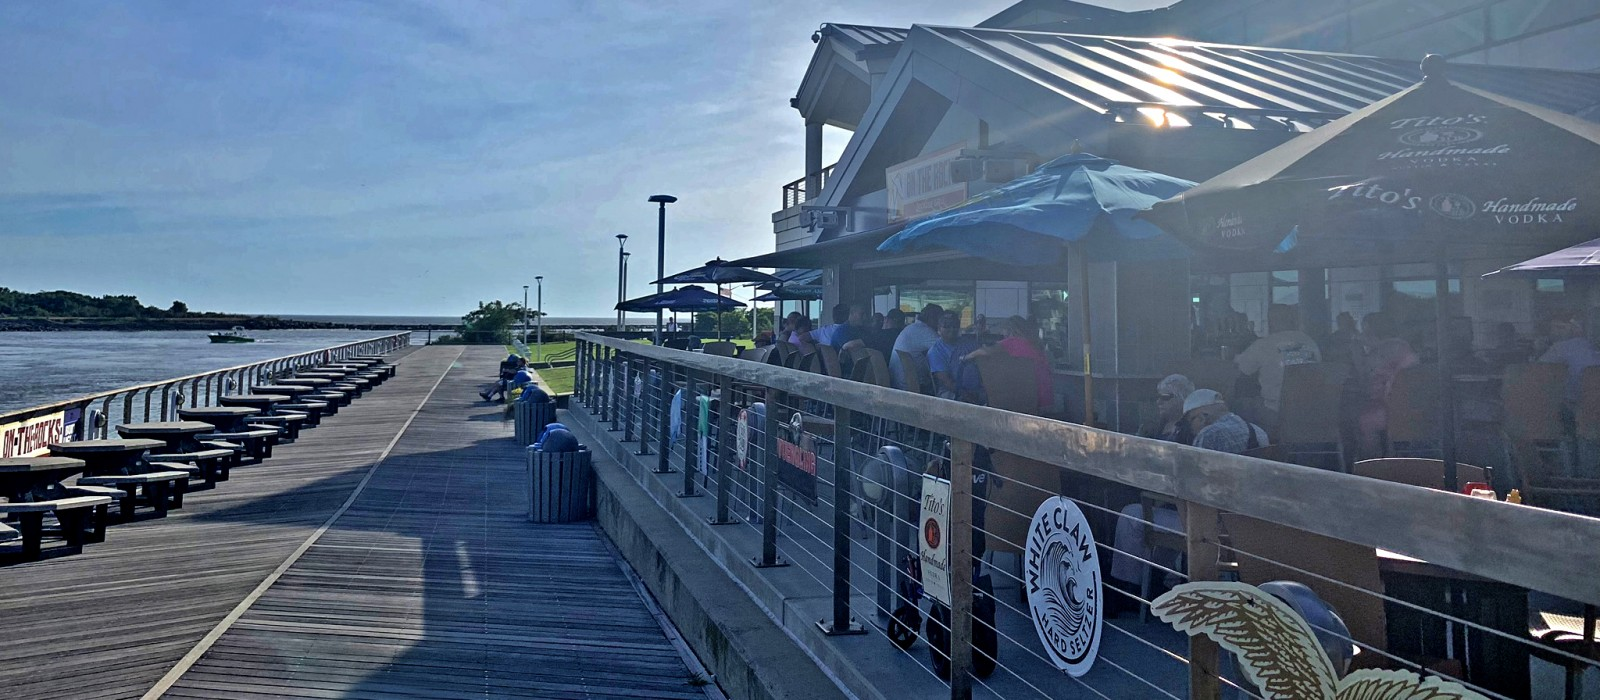 A sunny afternoon at On the Rocks in North Cape May, NJ